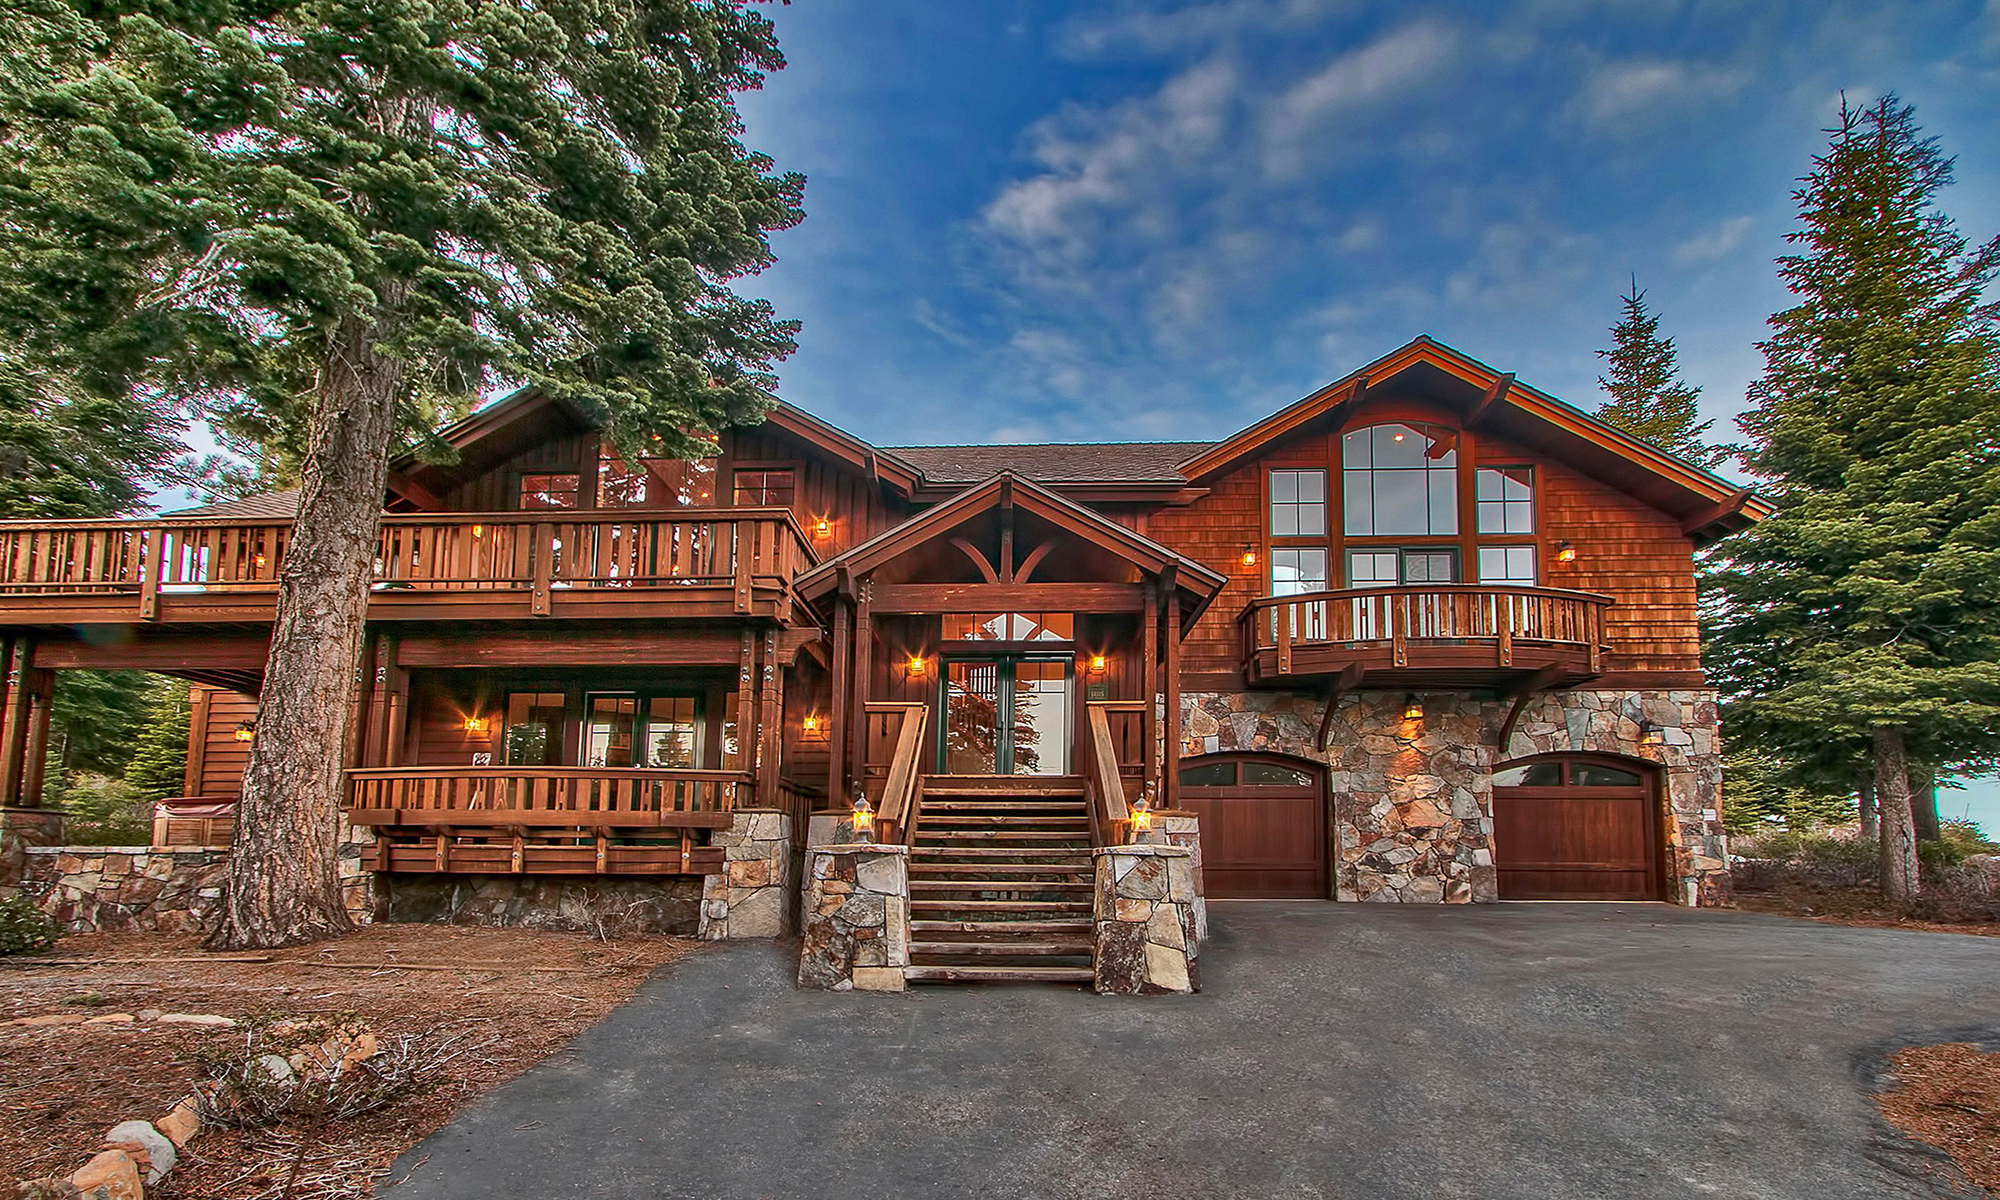 Single Family Home for Sale at Beautiful Lodge Style 14115 Skislope Way Tahoe Donner, Truckee, California 96161 United States